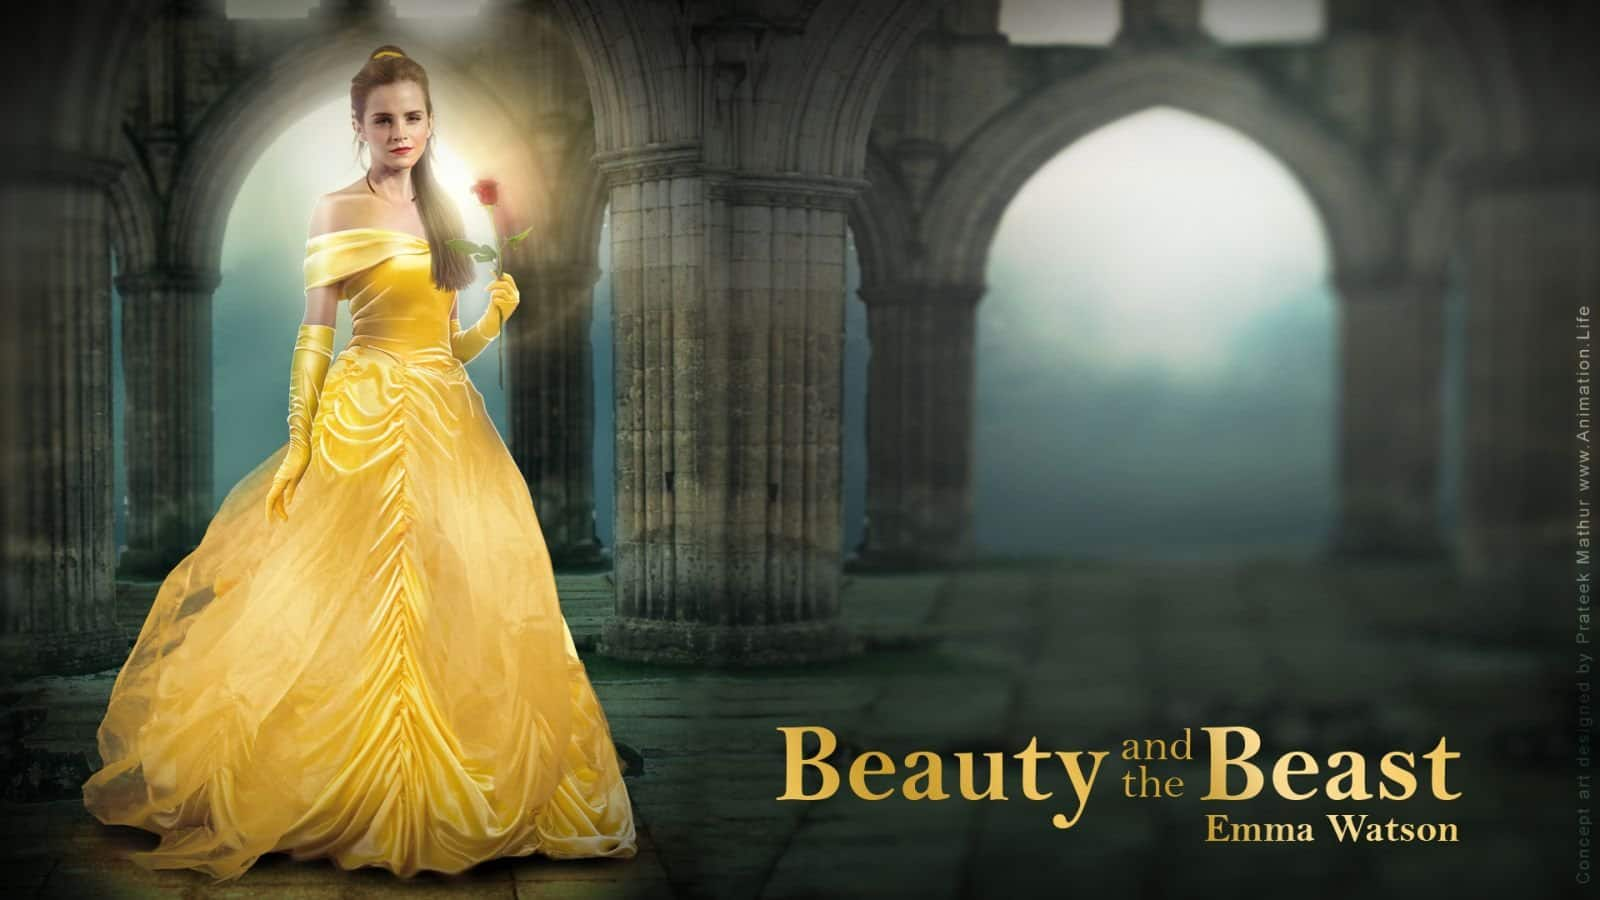 Emma Watson resurfaces from Hollywood hiatus for Beauty and the Beast